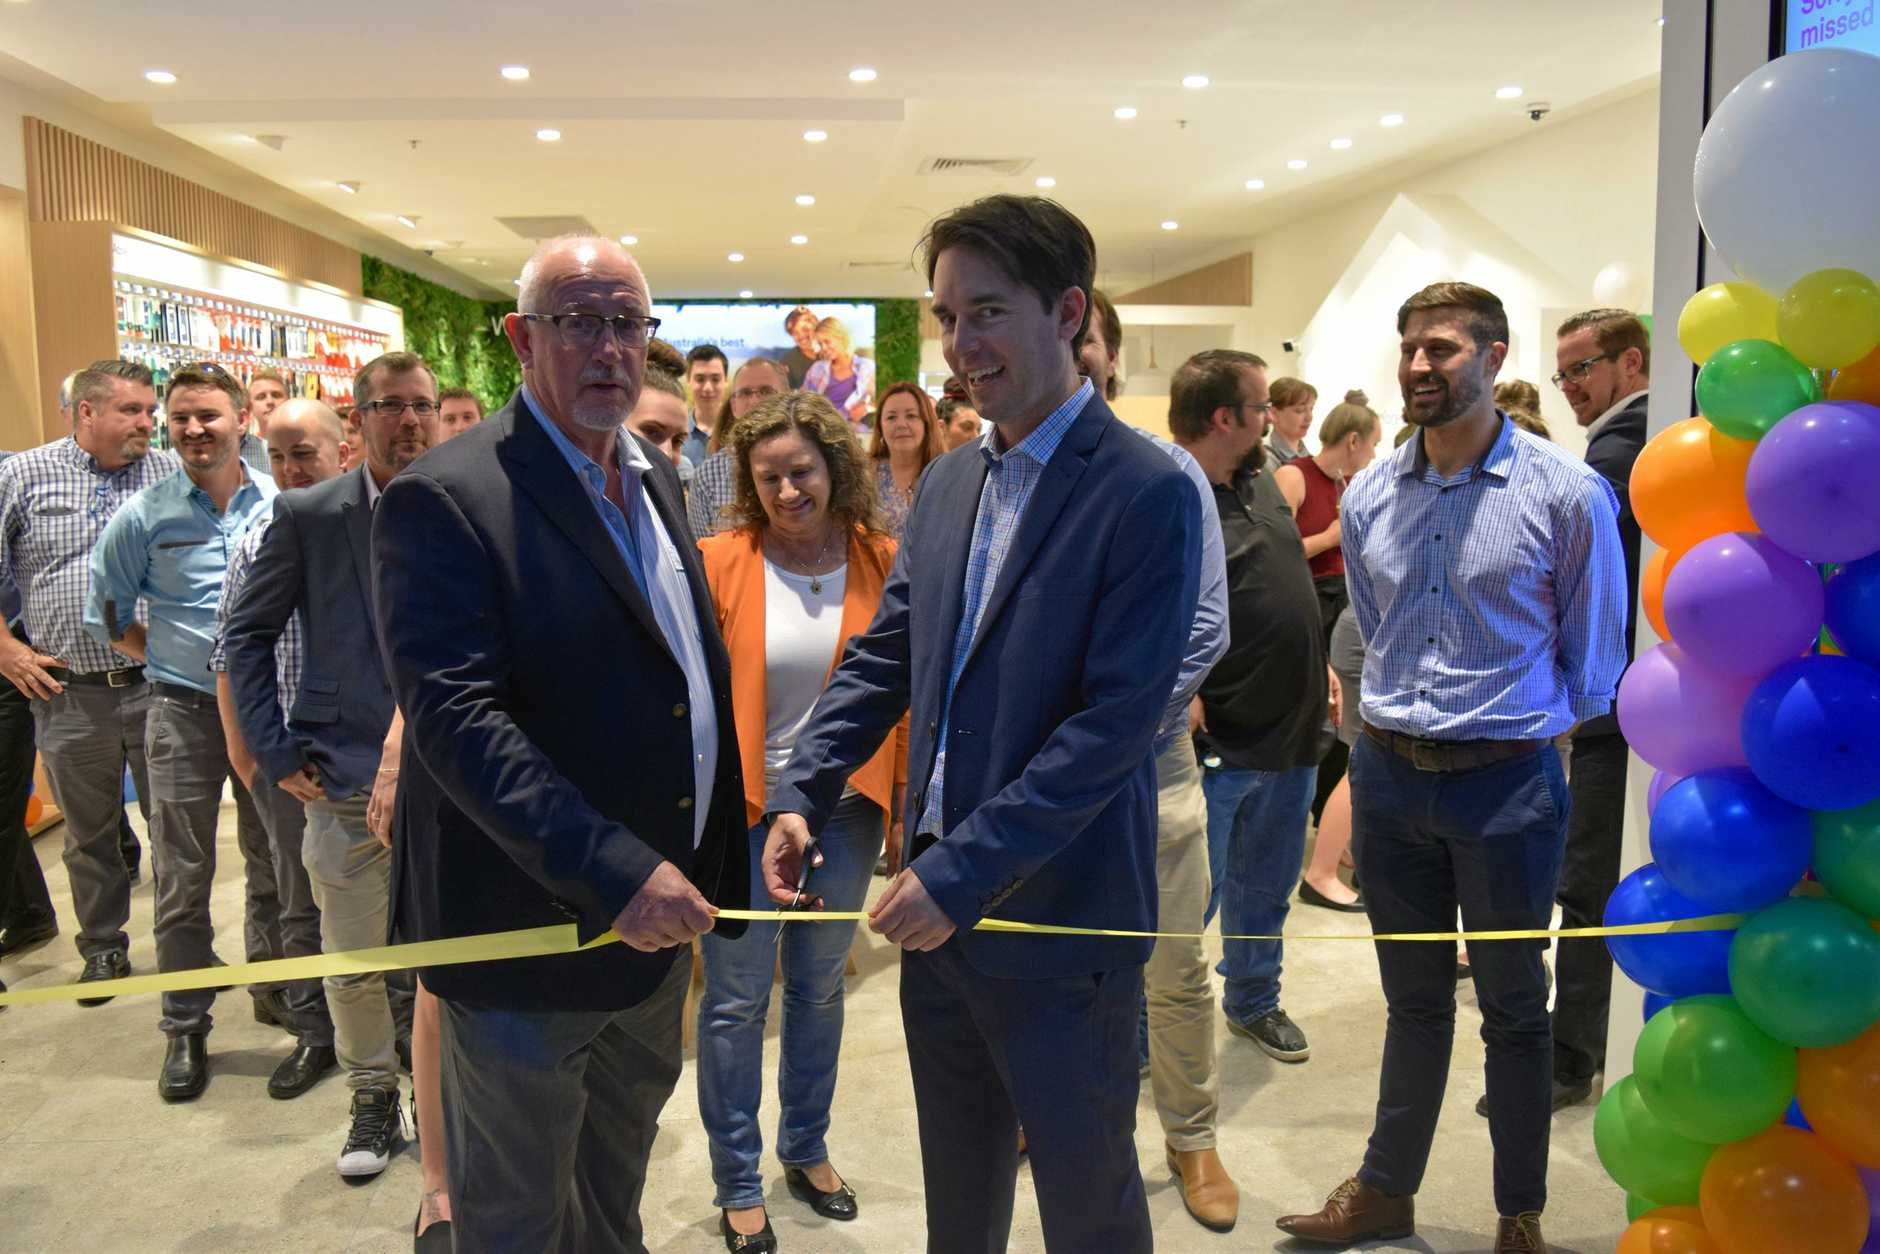 Telstra Store Maryborough held their official opening with CEO and owner James Fountain (left) and Fraser Coast Regional mayor George Seymour cutting the ribbon.